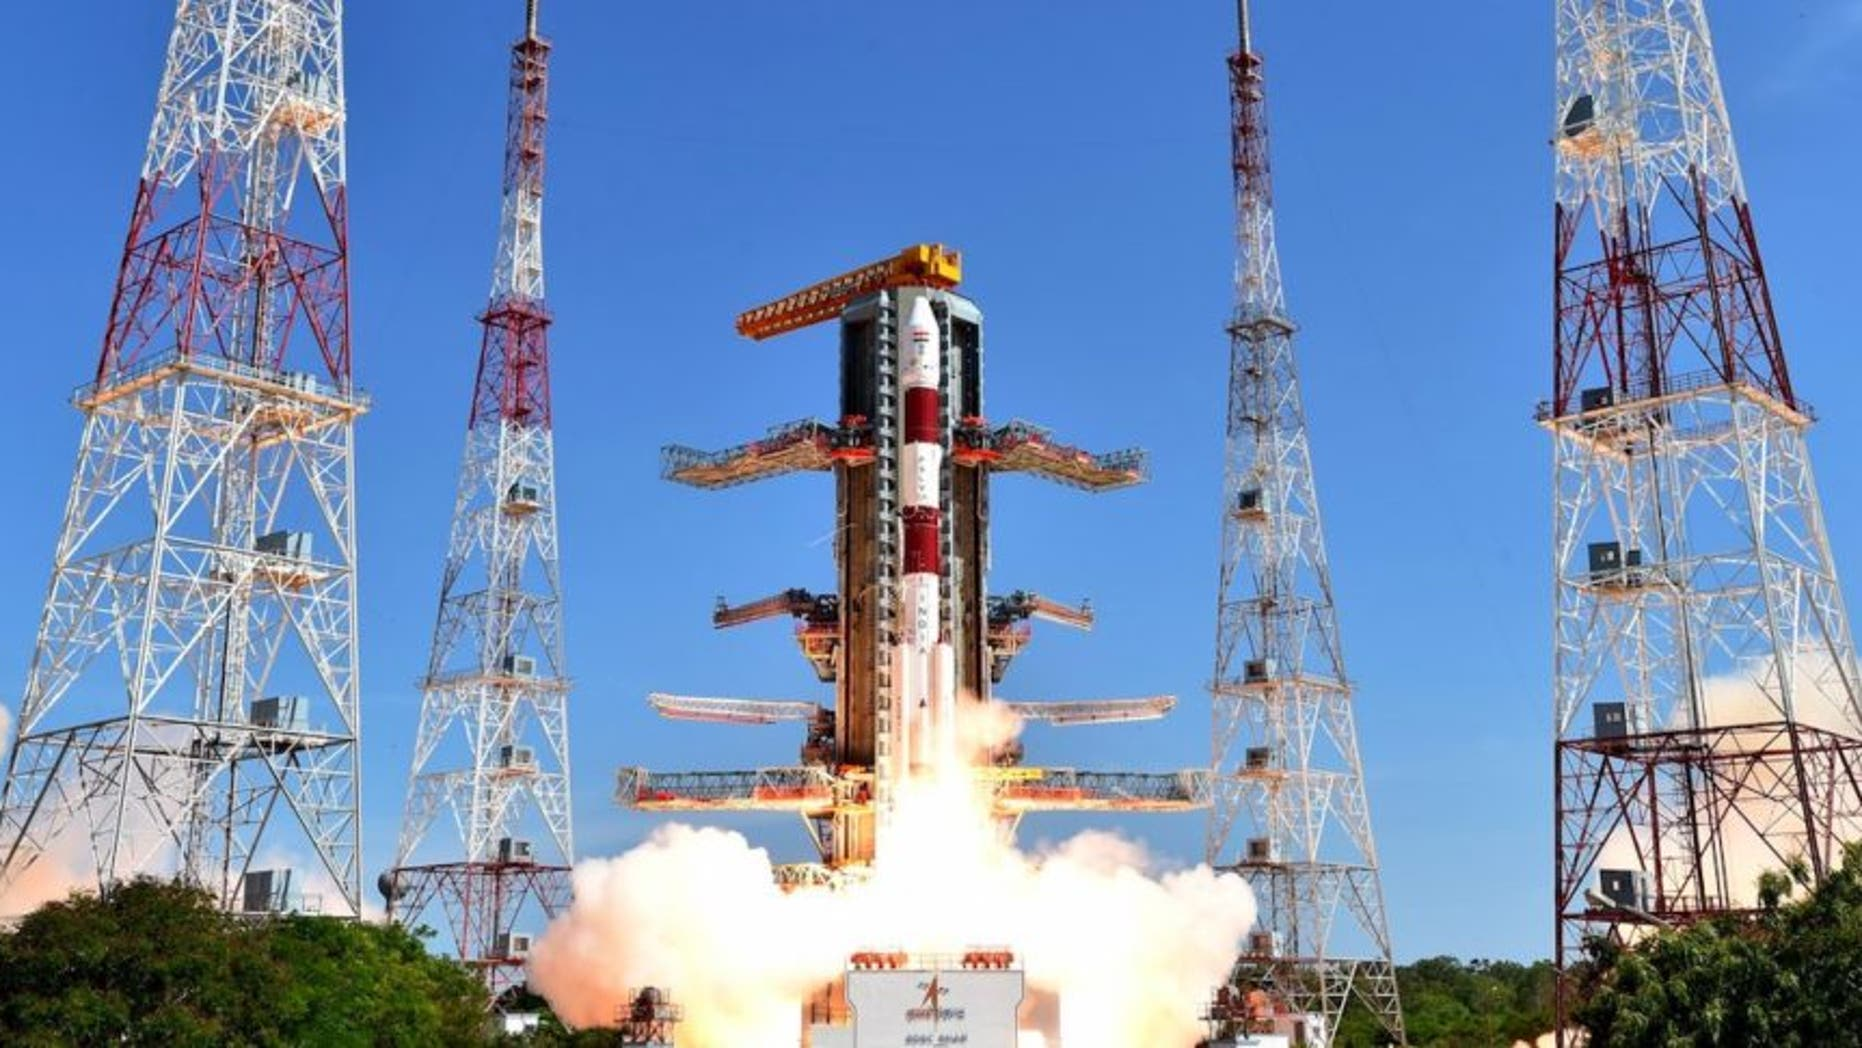 An Indian Polar Satellite Launch Vehicle (PSLV) lifts off in June. TeamIndus has purchased a PSLV launch in late 2017 for its Google Lunar X Prize Lander.